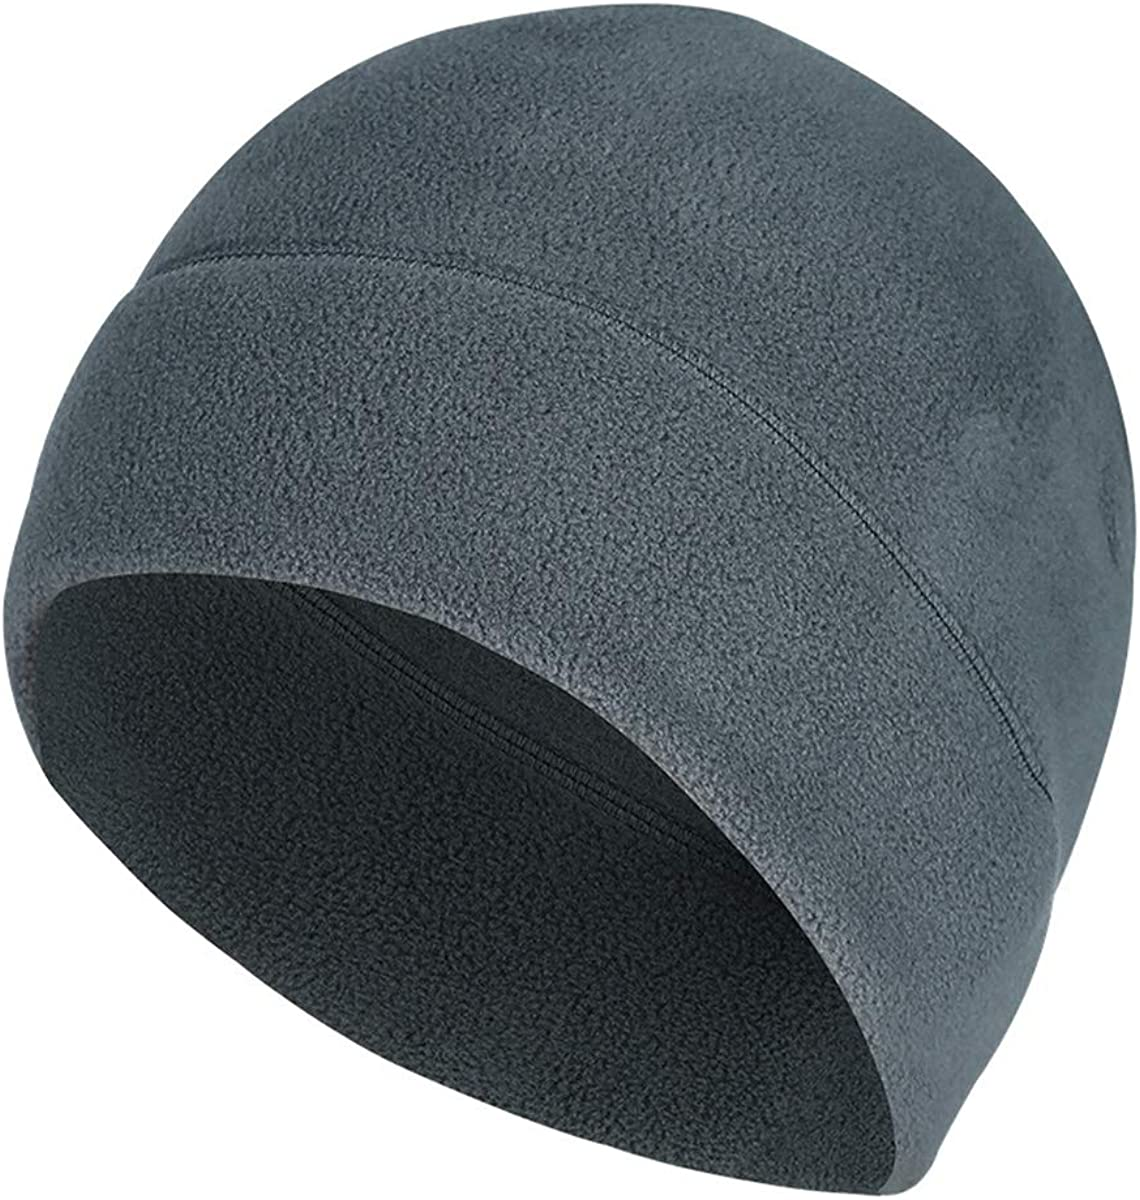 Skull Cap Helmet Liner Winter Windproof Cycling Beanie Hat for Running Cycling